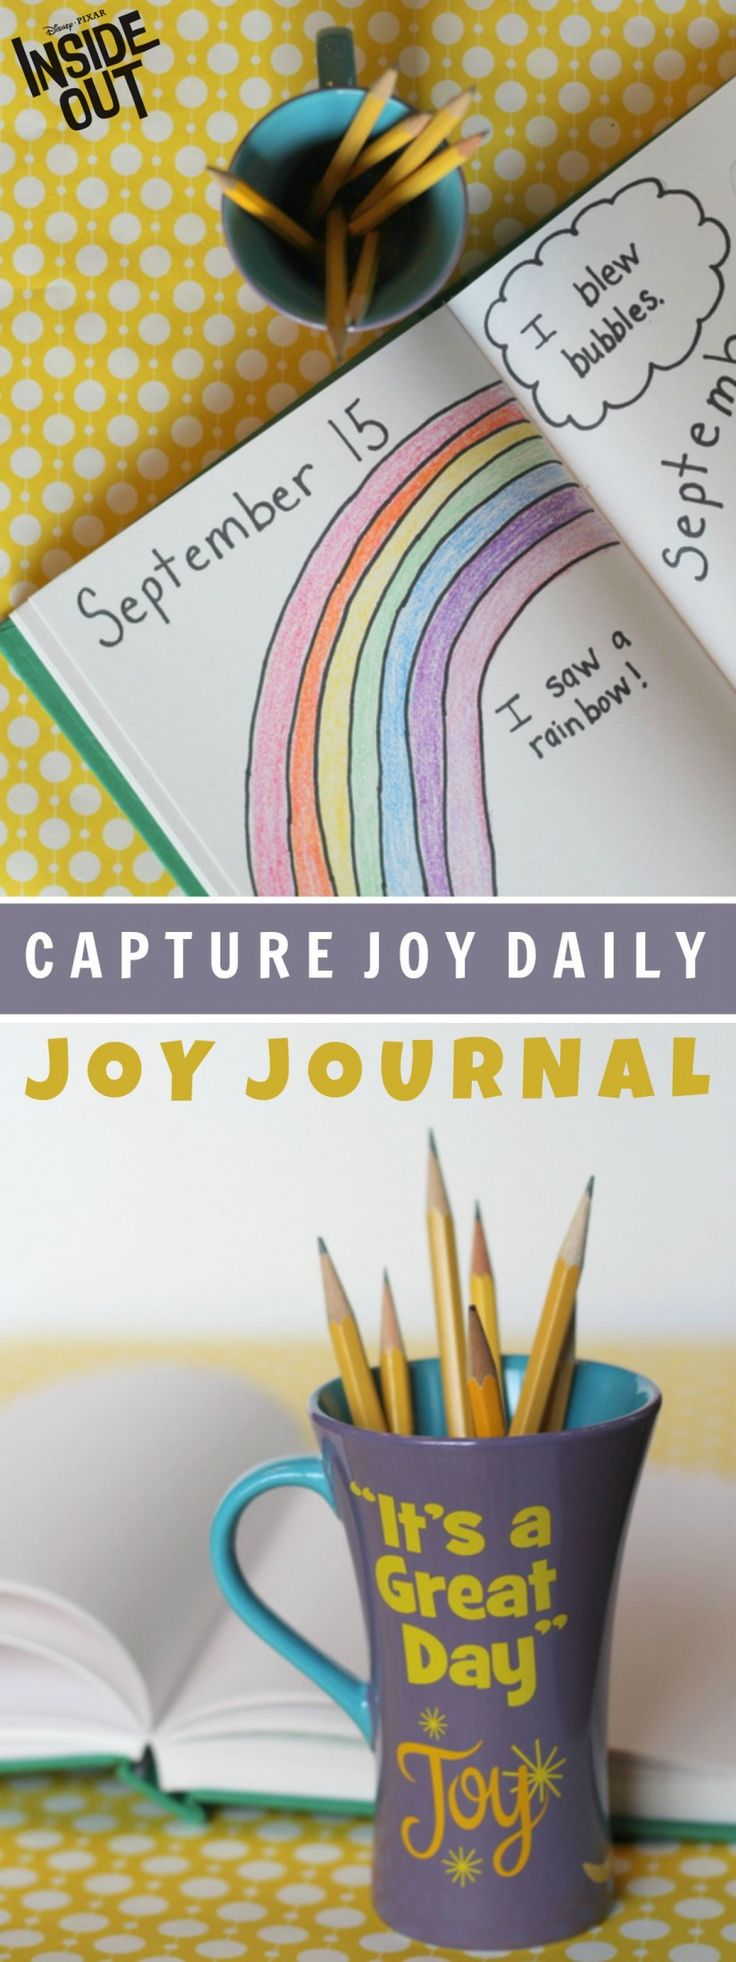 Kids of any age can capture joy daily by drawing and writing about little things that make them happy! Great for building a daily habit of gratitude. Just one of many important lessons learned from the Disney Pixar movie Inside Out coming to Disney Movies Anywhere 10/13 and Blu-ray 11/3!